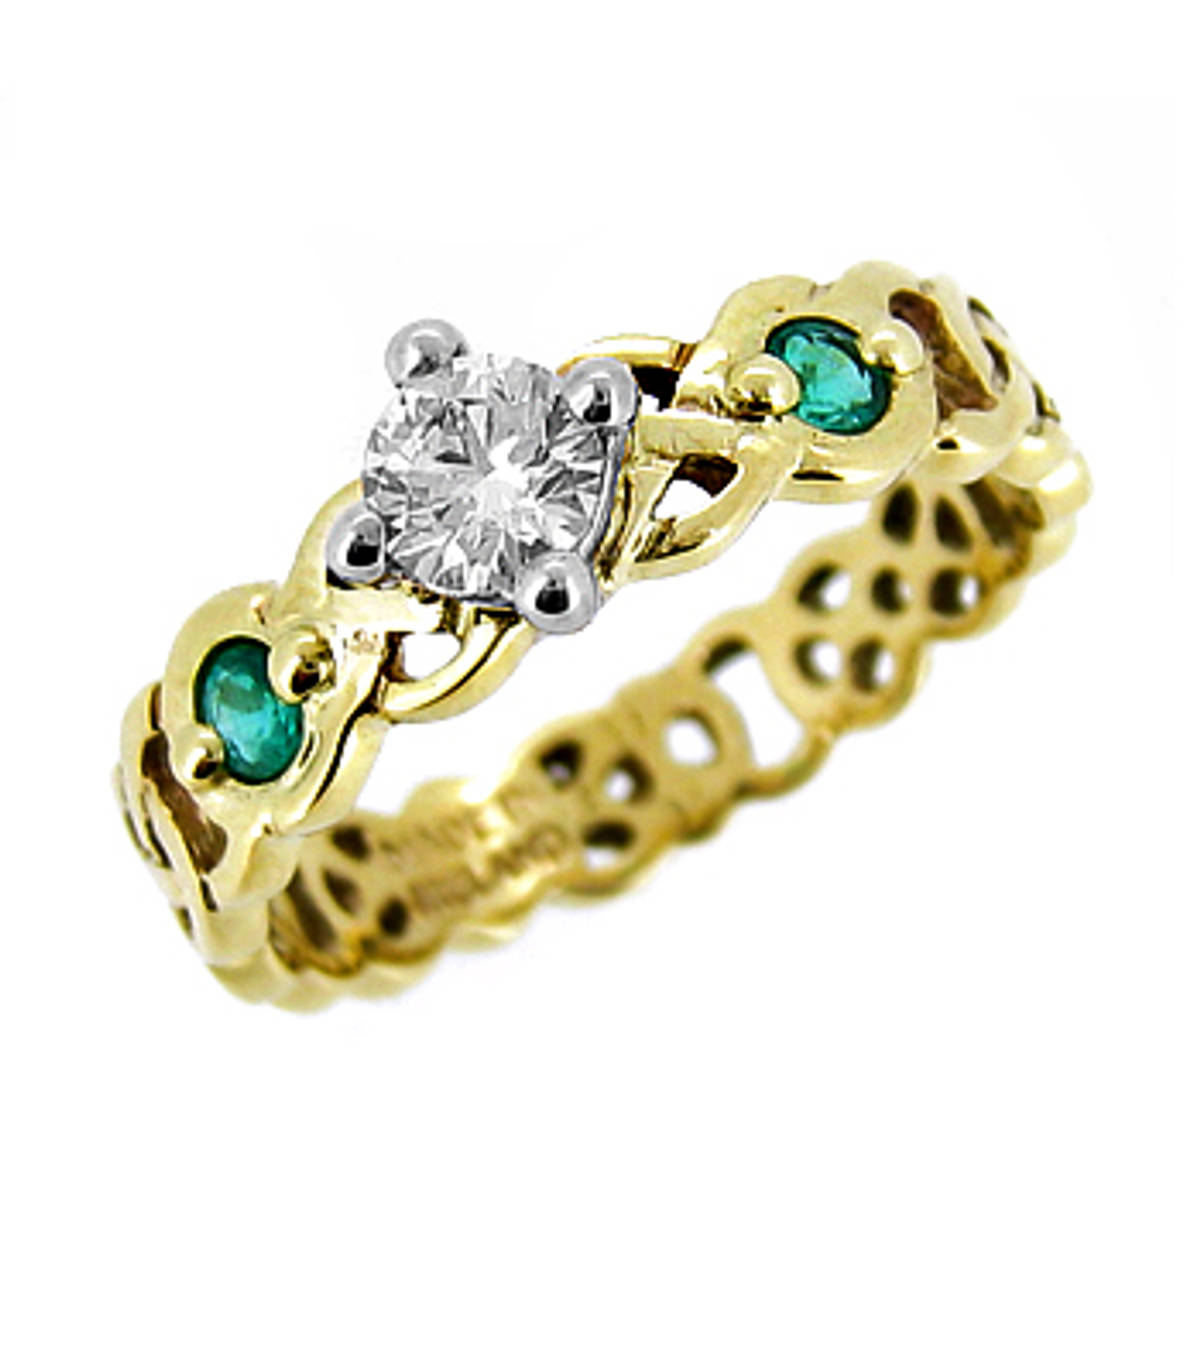 Irish made 14 carat yellow gold 0.30cts diamonds/0.14cts emeralds celtic engagement ring